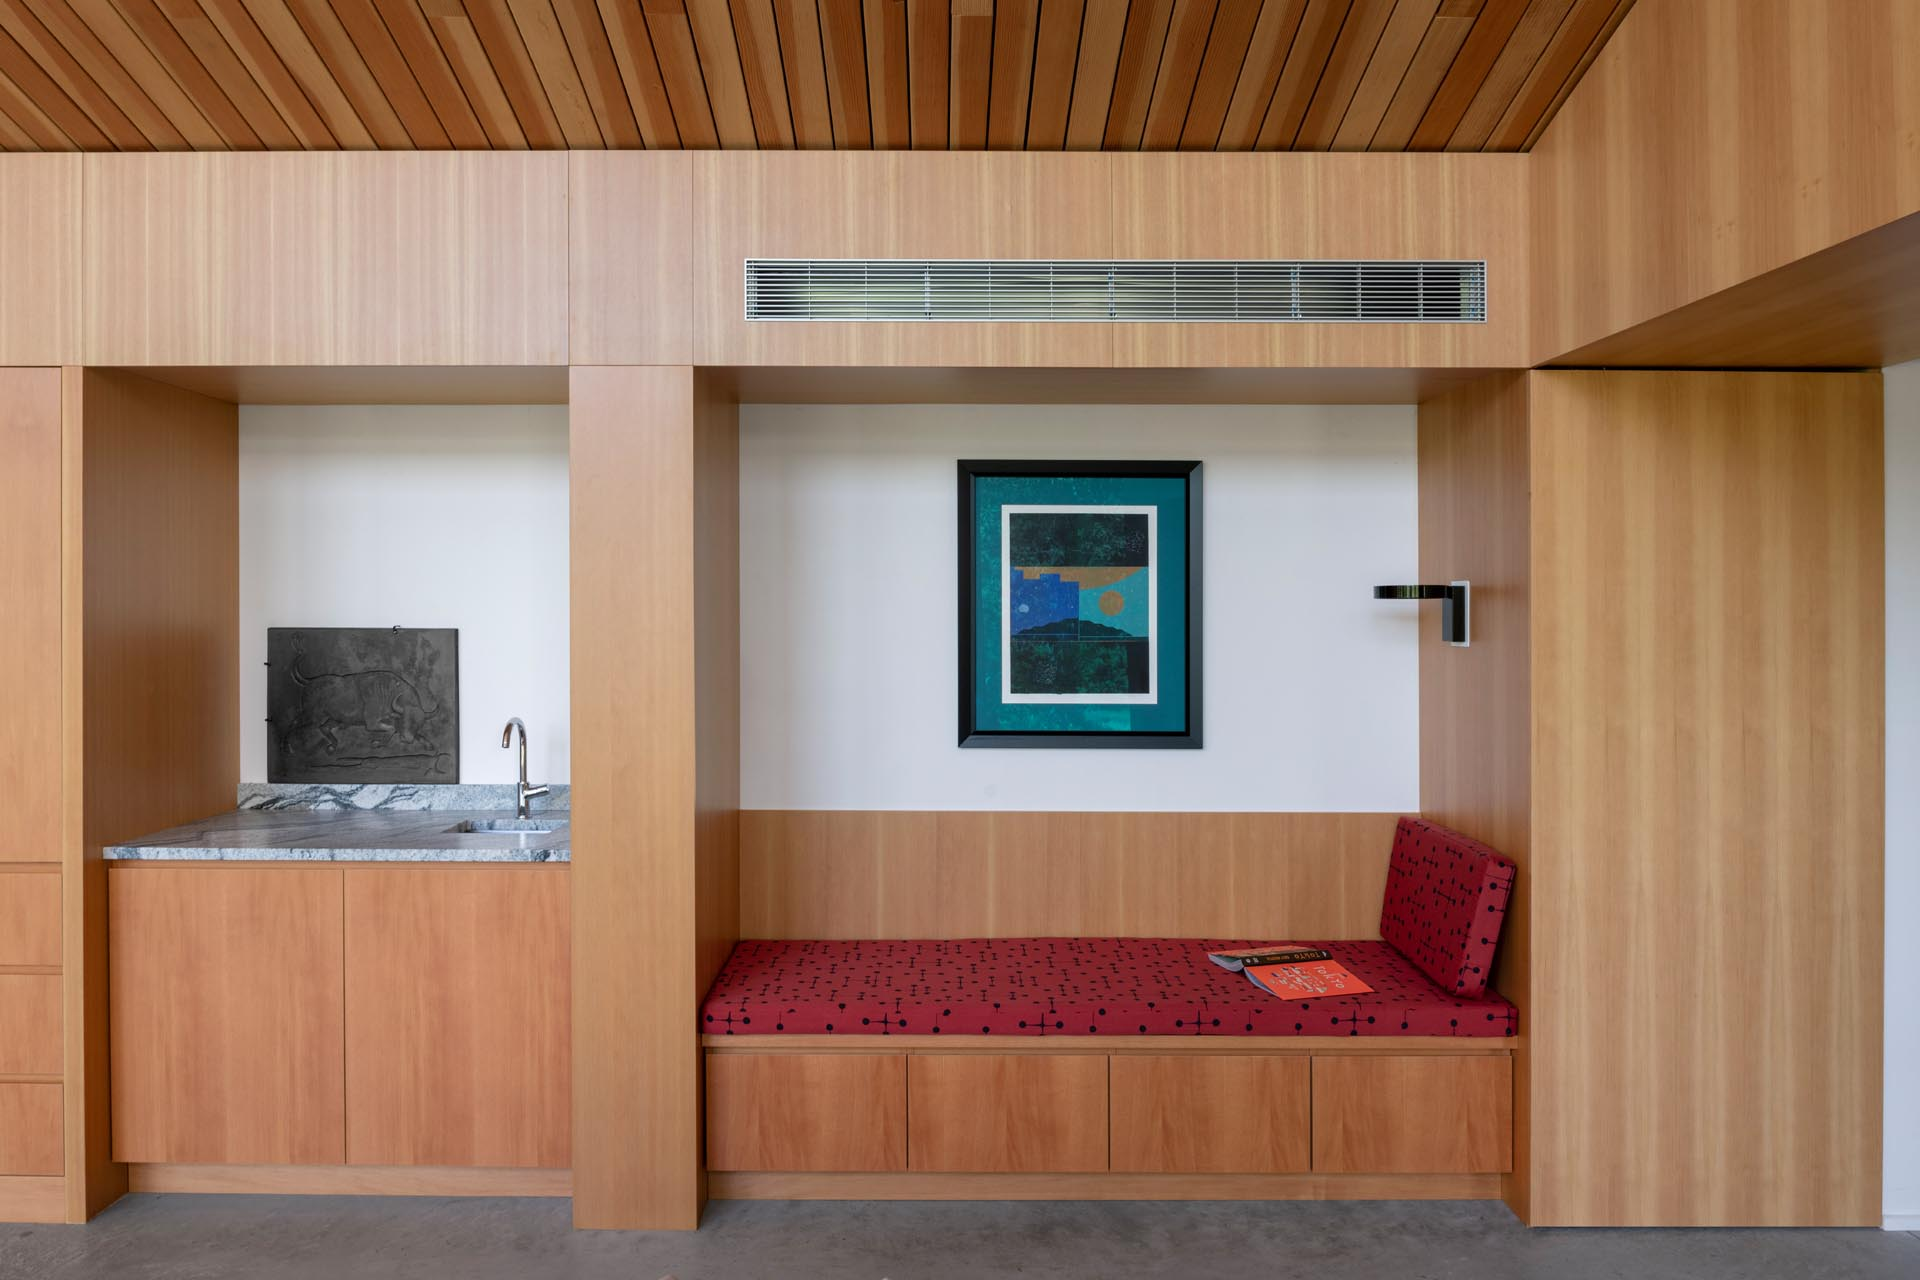 A modern home interior with a built-in bench and small wet bar.